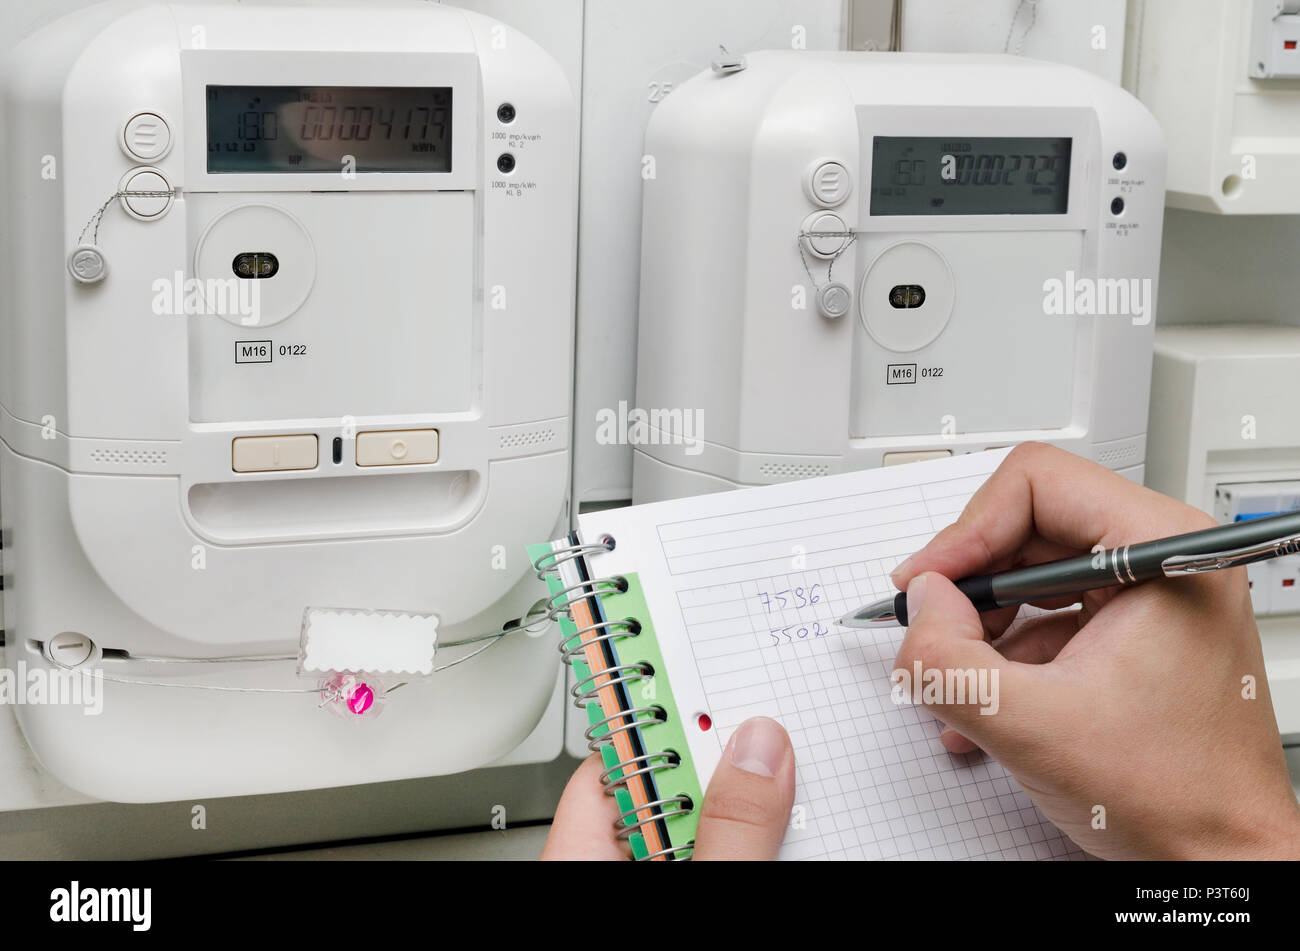 Increasing Electricity Meter : Electric energy meter man notes the meter reading increase in